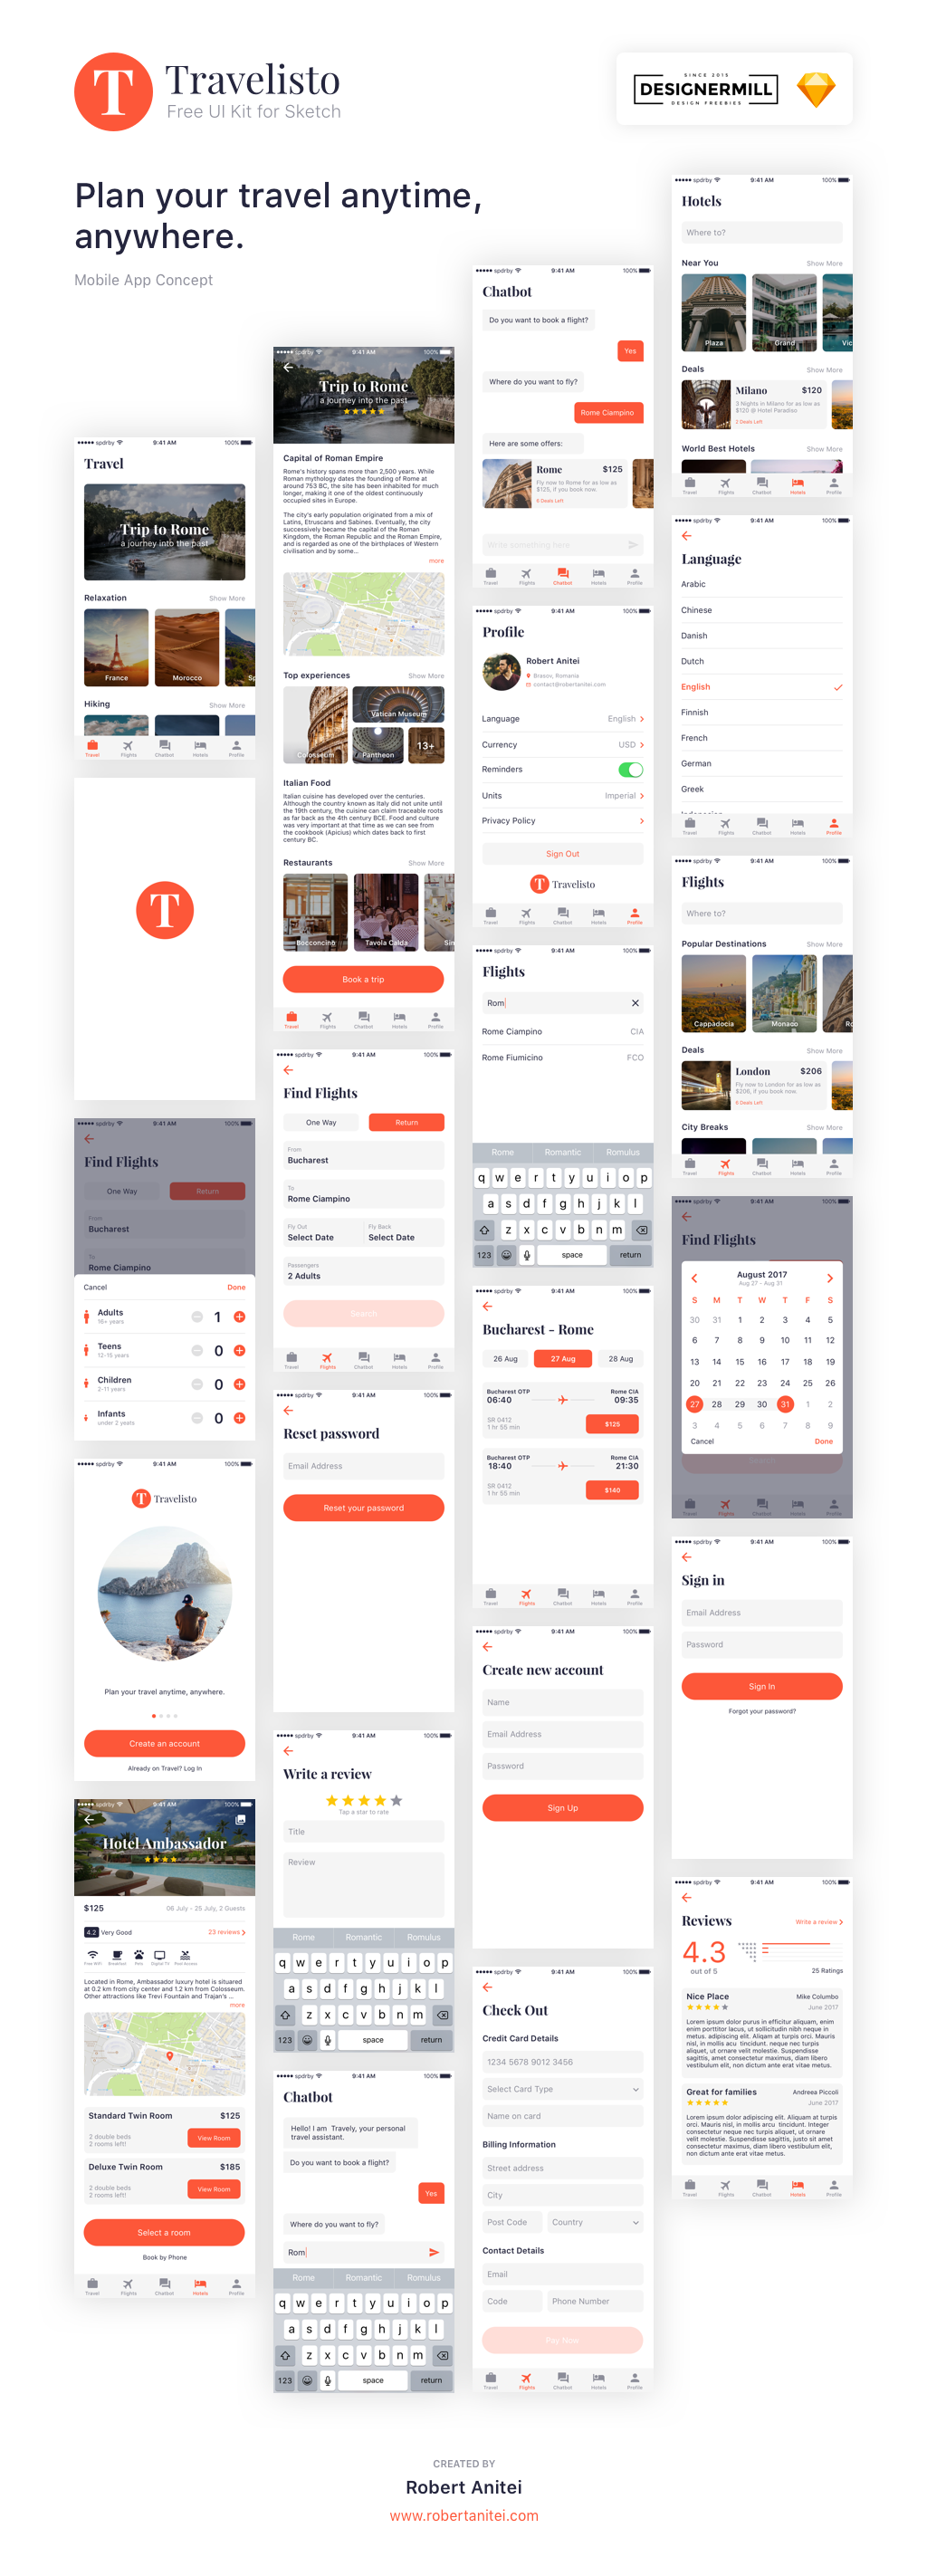 Travelisto App Design UI Kit for Sketch - Grab it Now!